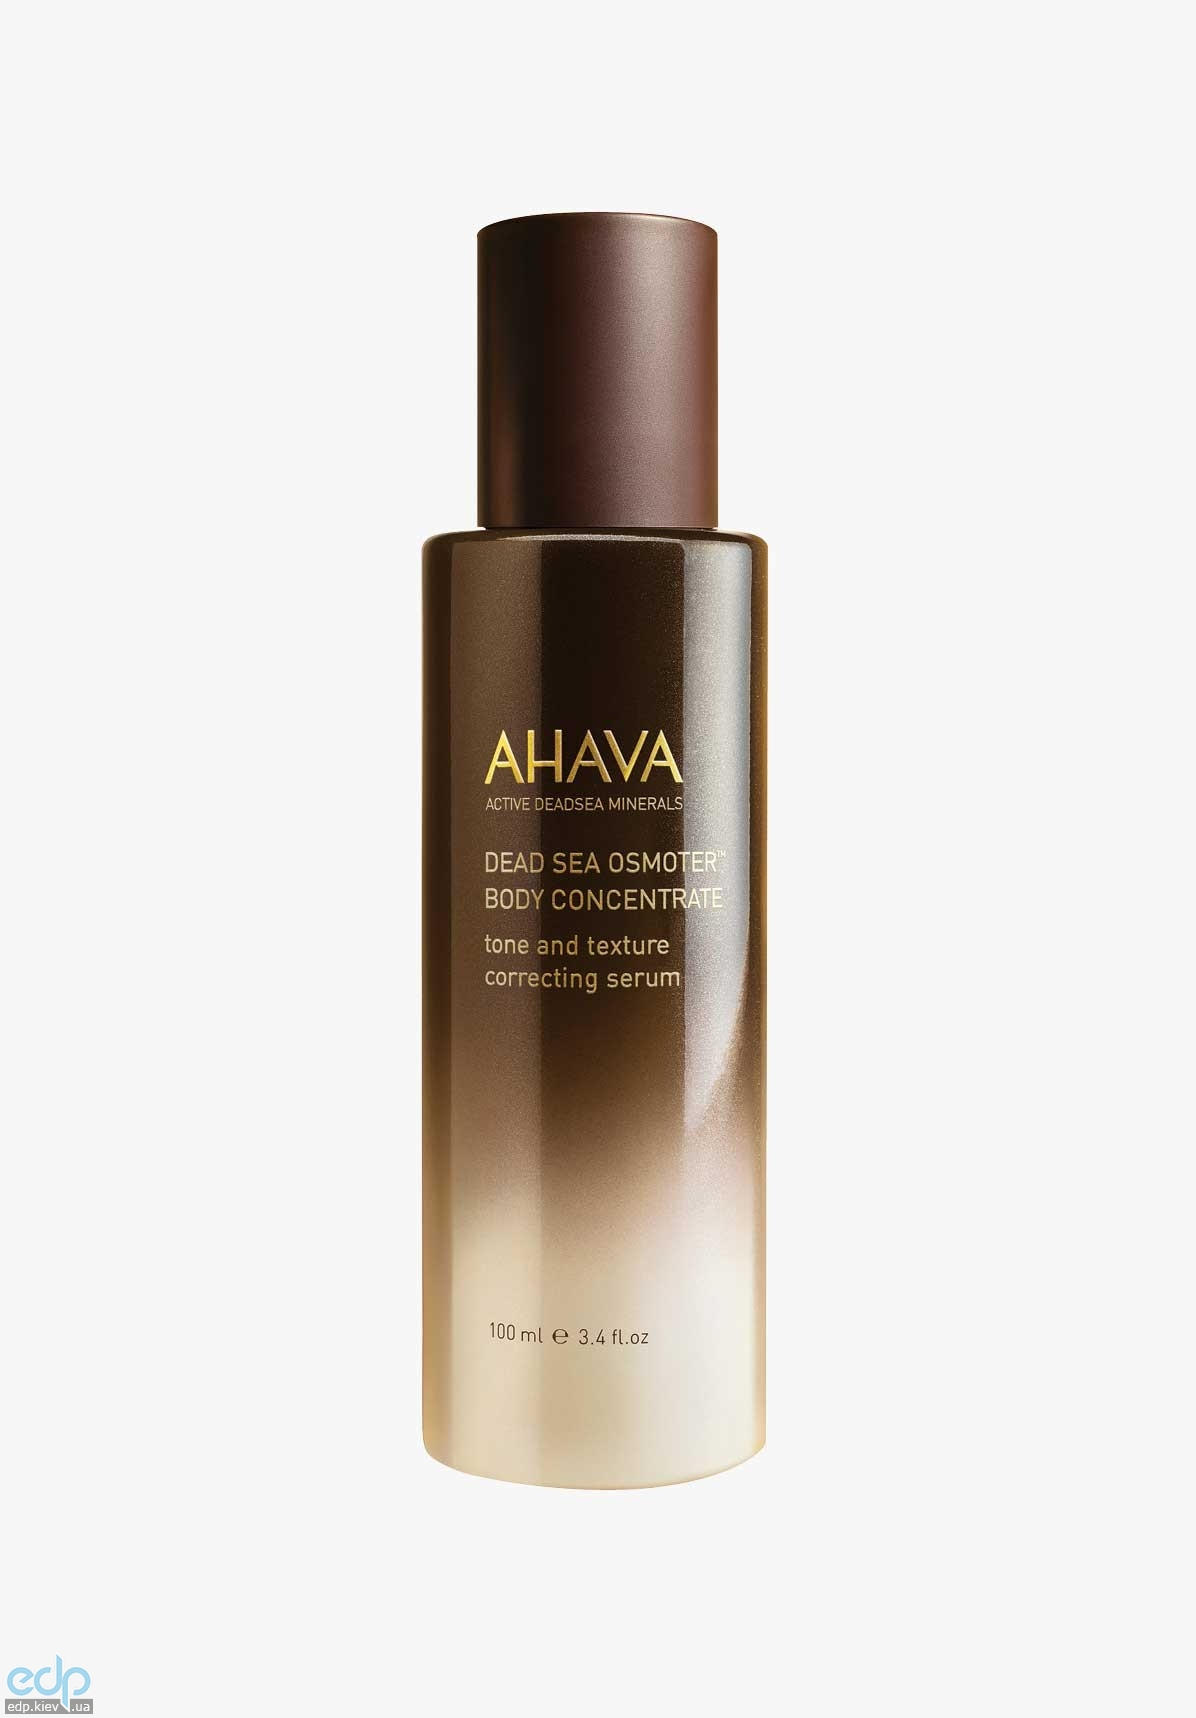 Ahava - Сыворотка Osmoter для тела - Dead Sea Osmoter Body Concentrate - 100 ml